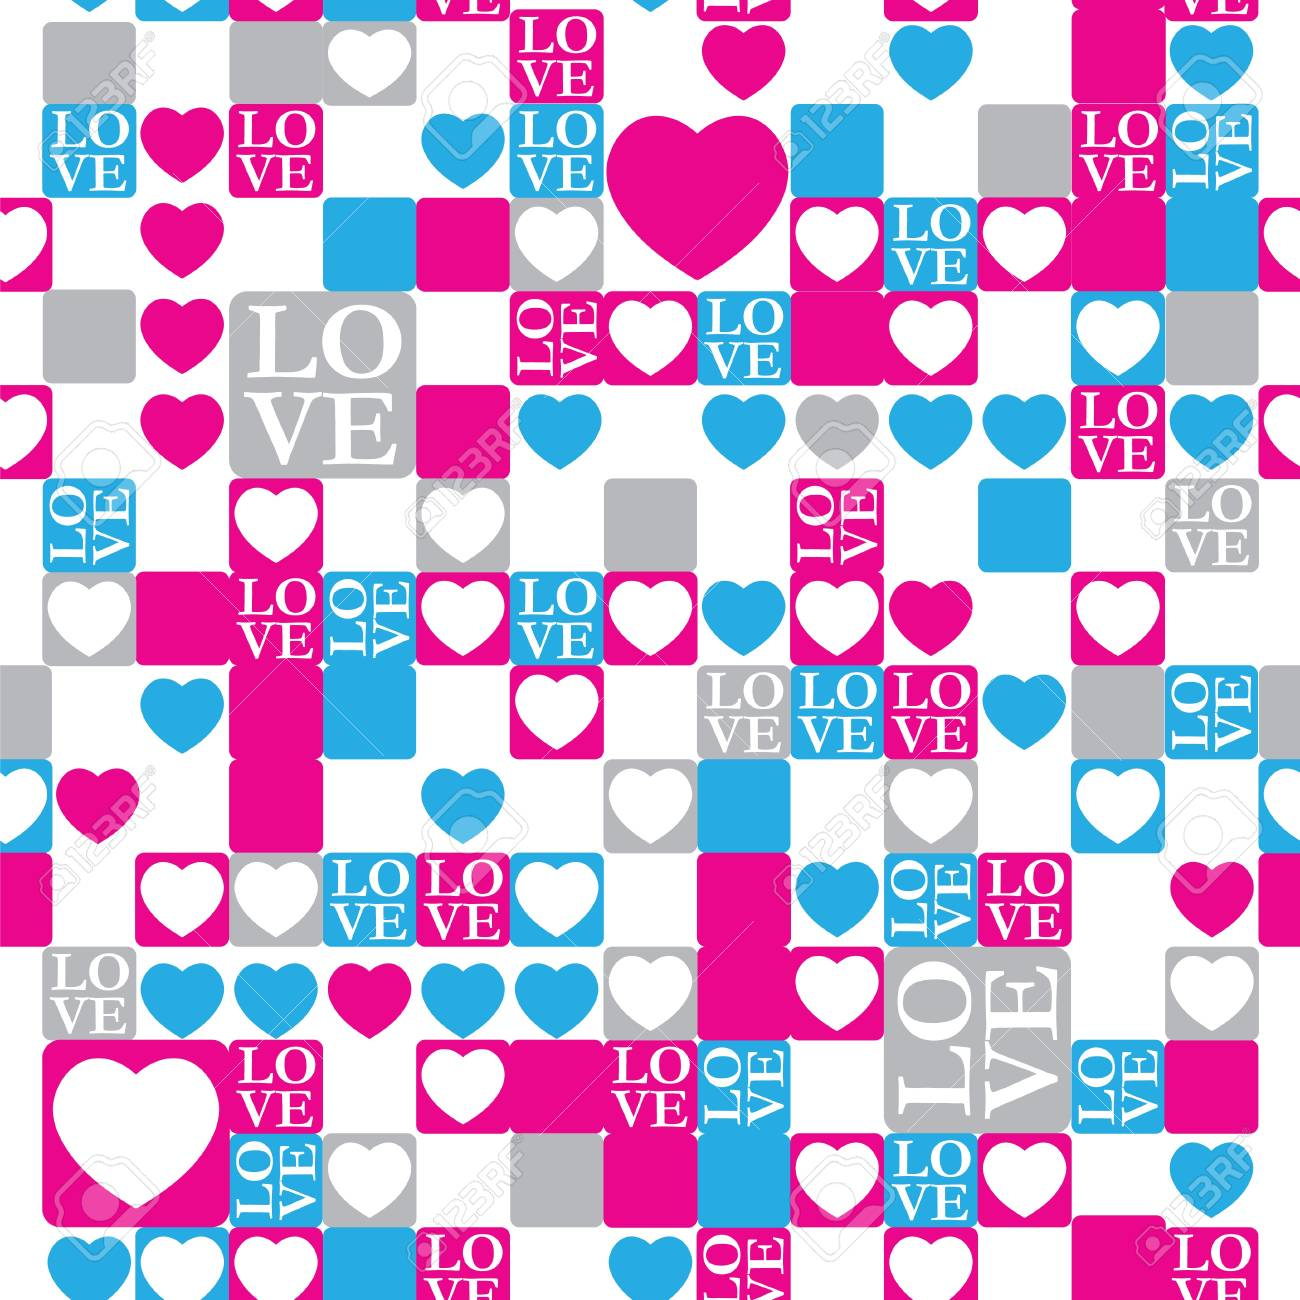 Love and heart concept background Stock Vector - 12054944